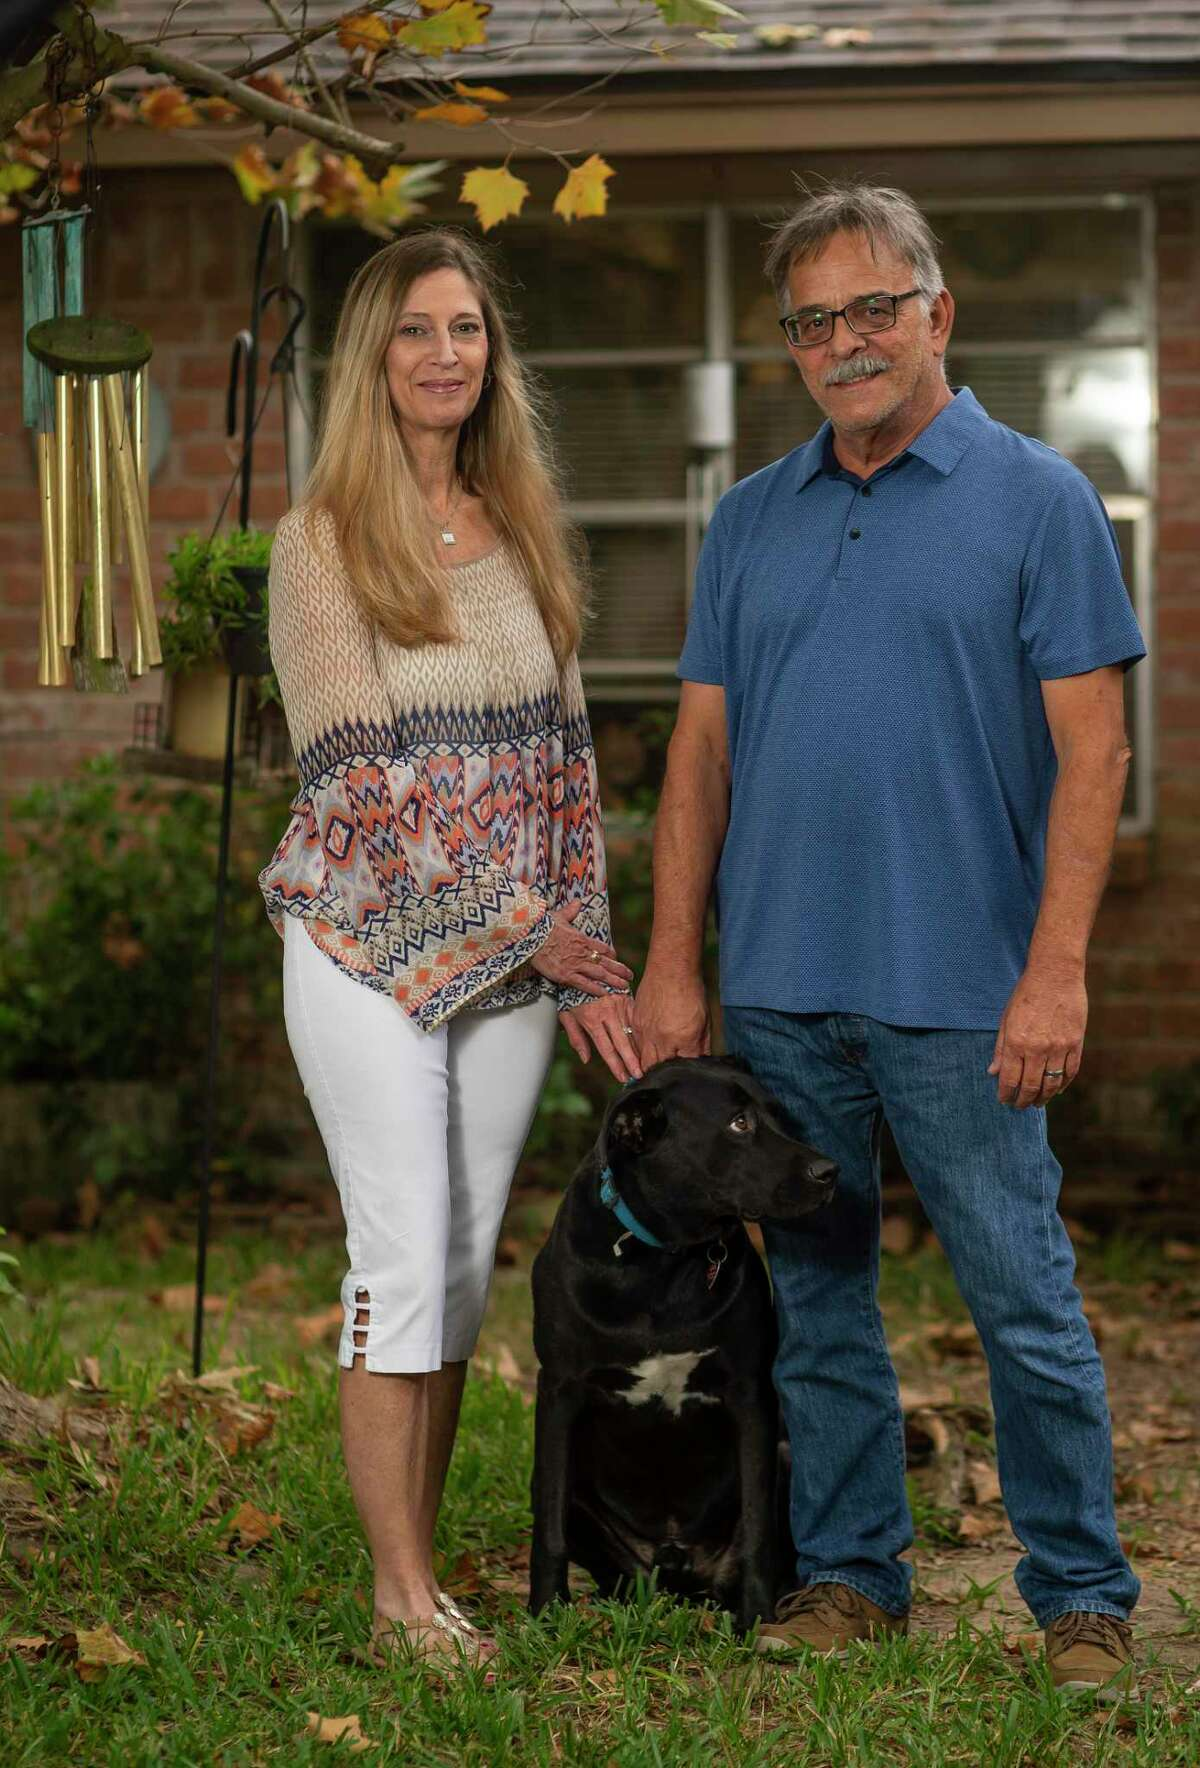 Trish Miata, with her husband, John, and dog, Diesel, survived a stroke known for leaving people with severe disabilities, but she was back to work and her regular exercise routine in just eight months. She credits her recovery to timely treatment, which is important to discuss right now as so many people are avoiding treatment due to fear of COVID. Through telemedicine and communication with doctors, Miata was able to have two important treatment procedures within 30 minutes of her stroke. Photographed at her home, Thursday, Oct. 8, 2020, in Houston.